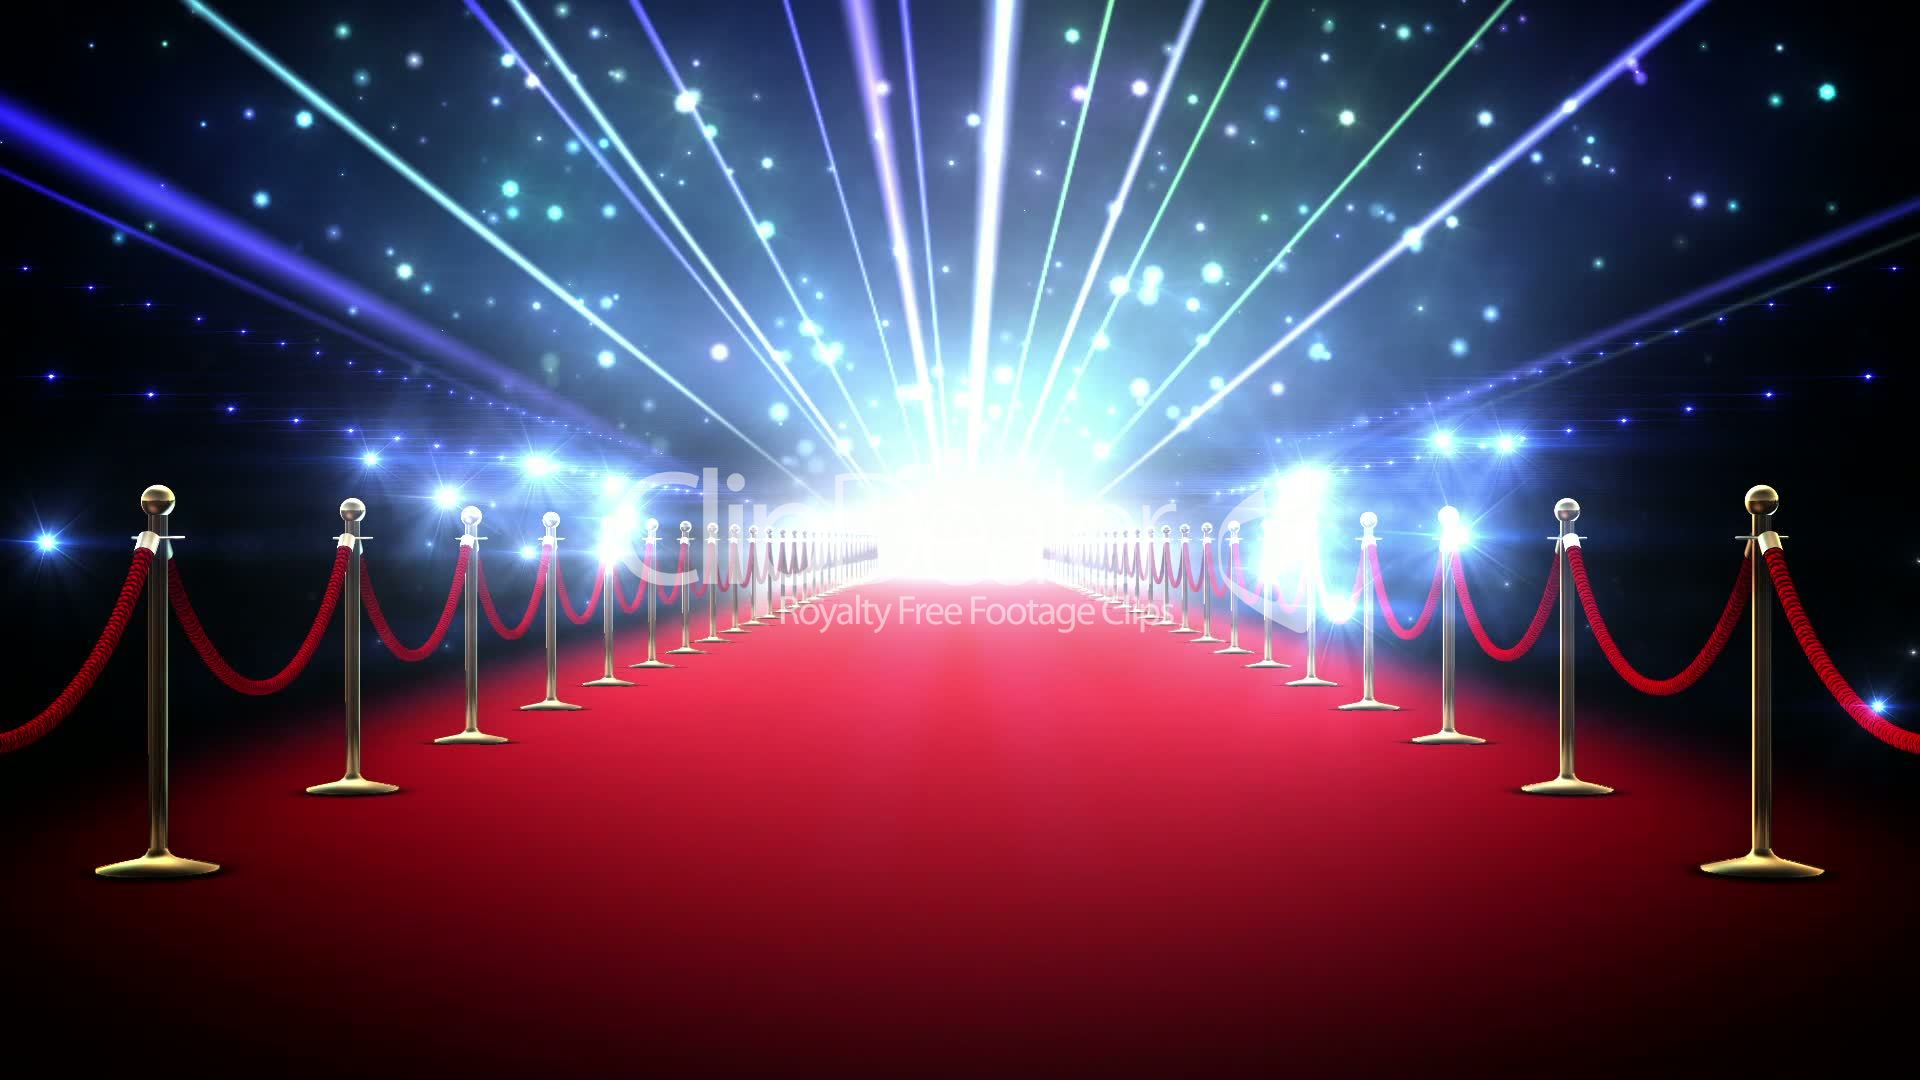 Magic Red Carpet Loop Royalty Free Video And Stock Footage